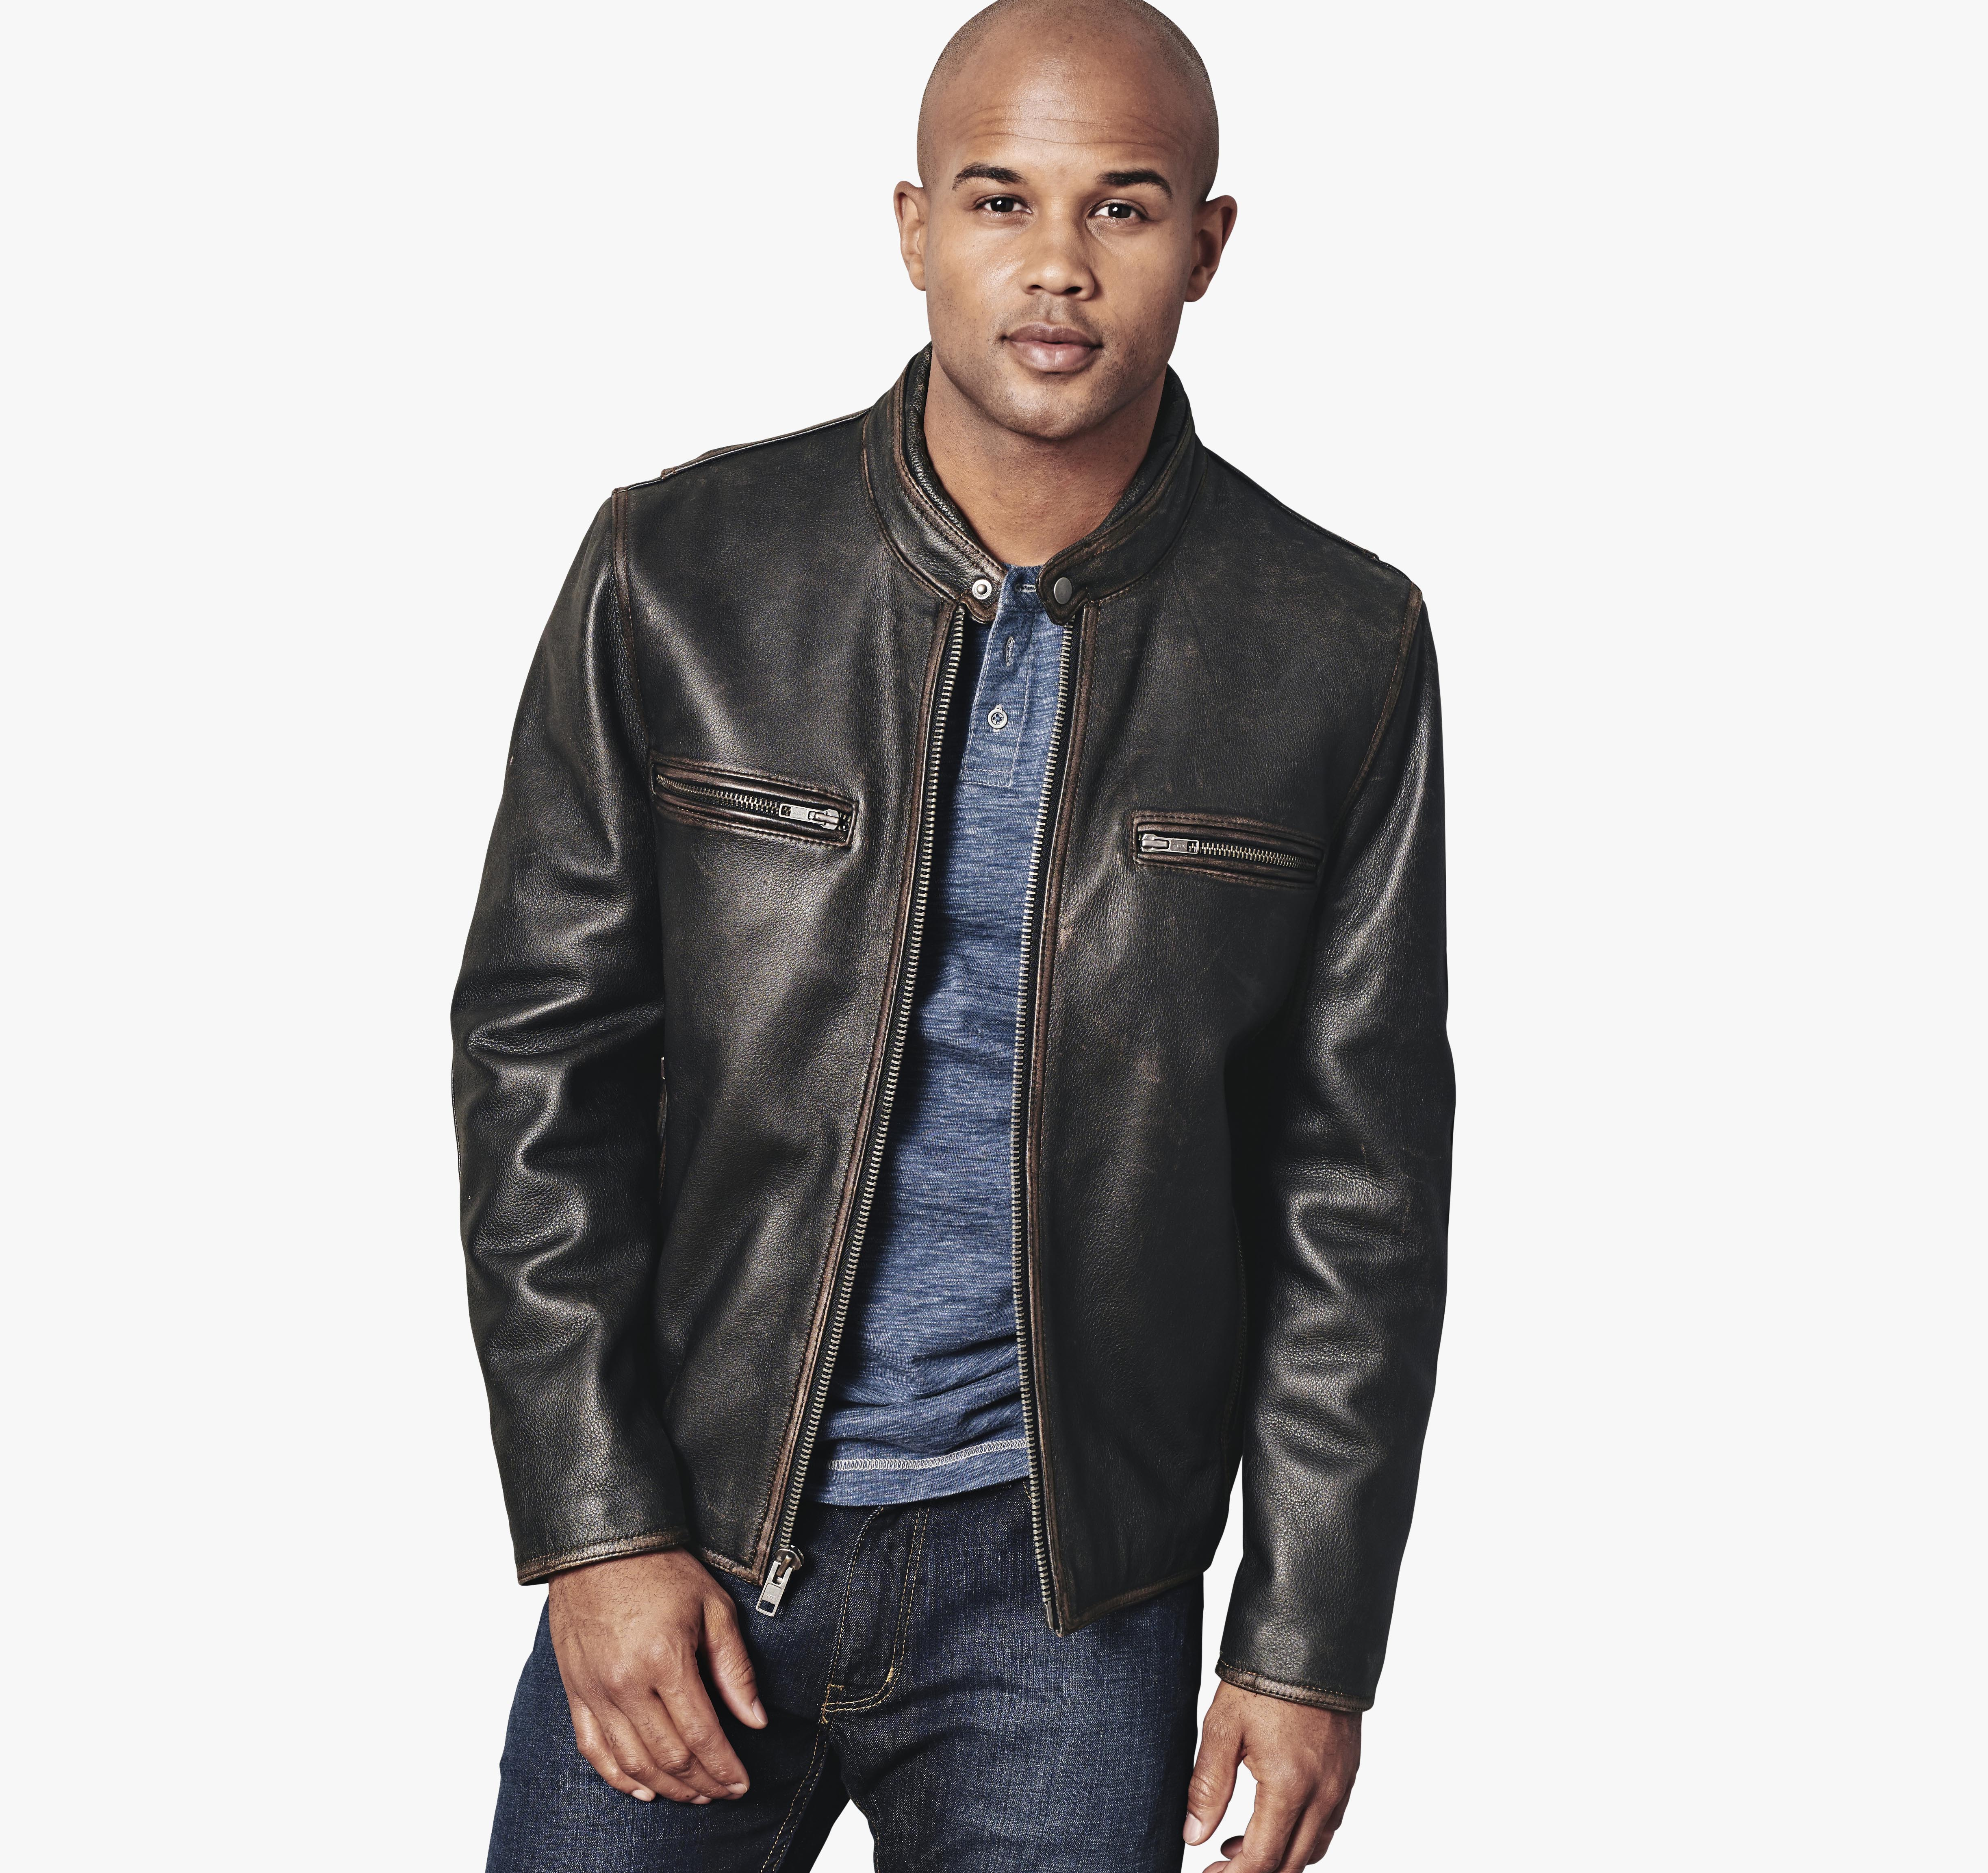 distinctive xsmall the a streamlined jacket racer ax with style our updates jackets caf rugged silhouette job black leather rug and pin distressed